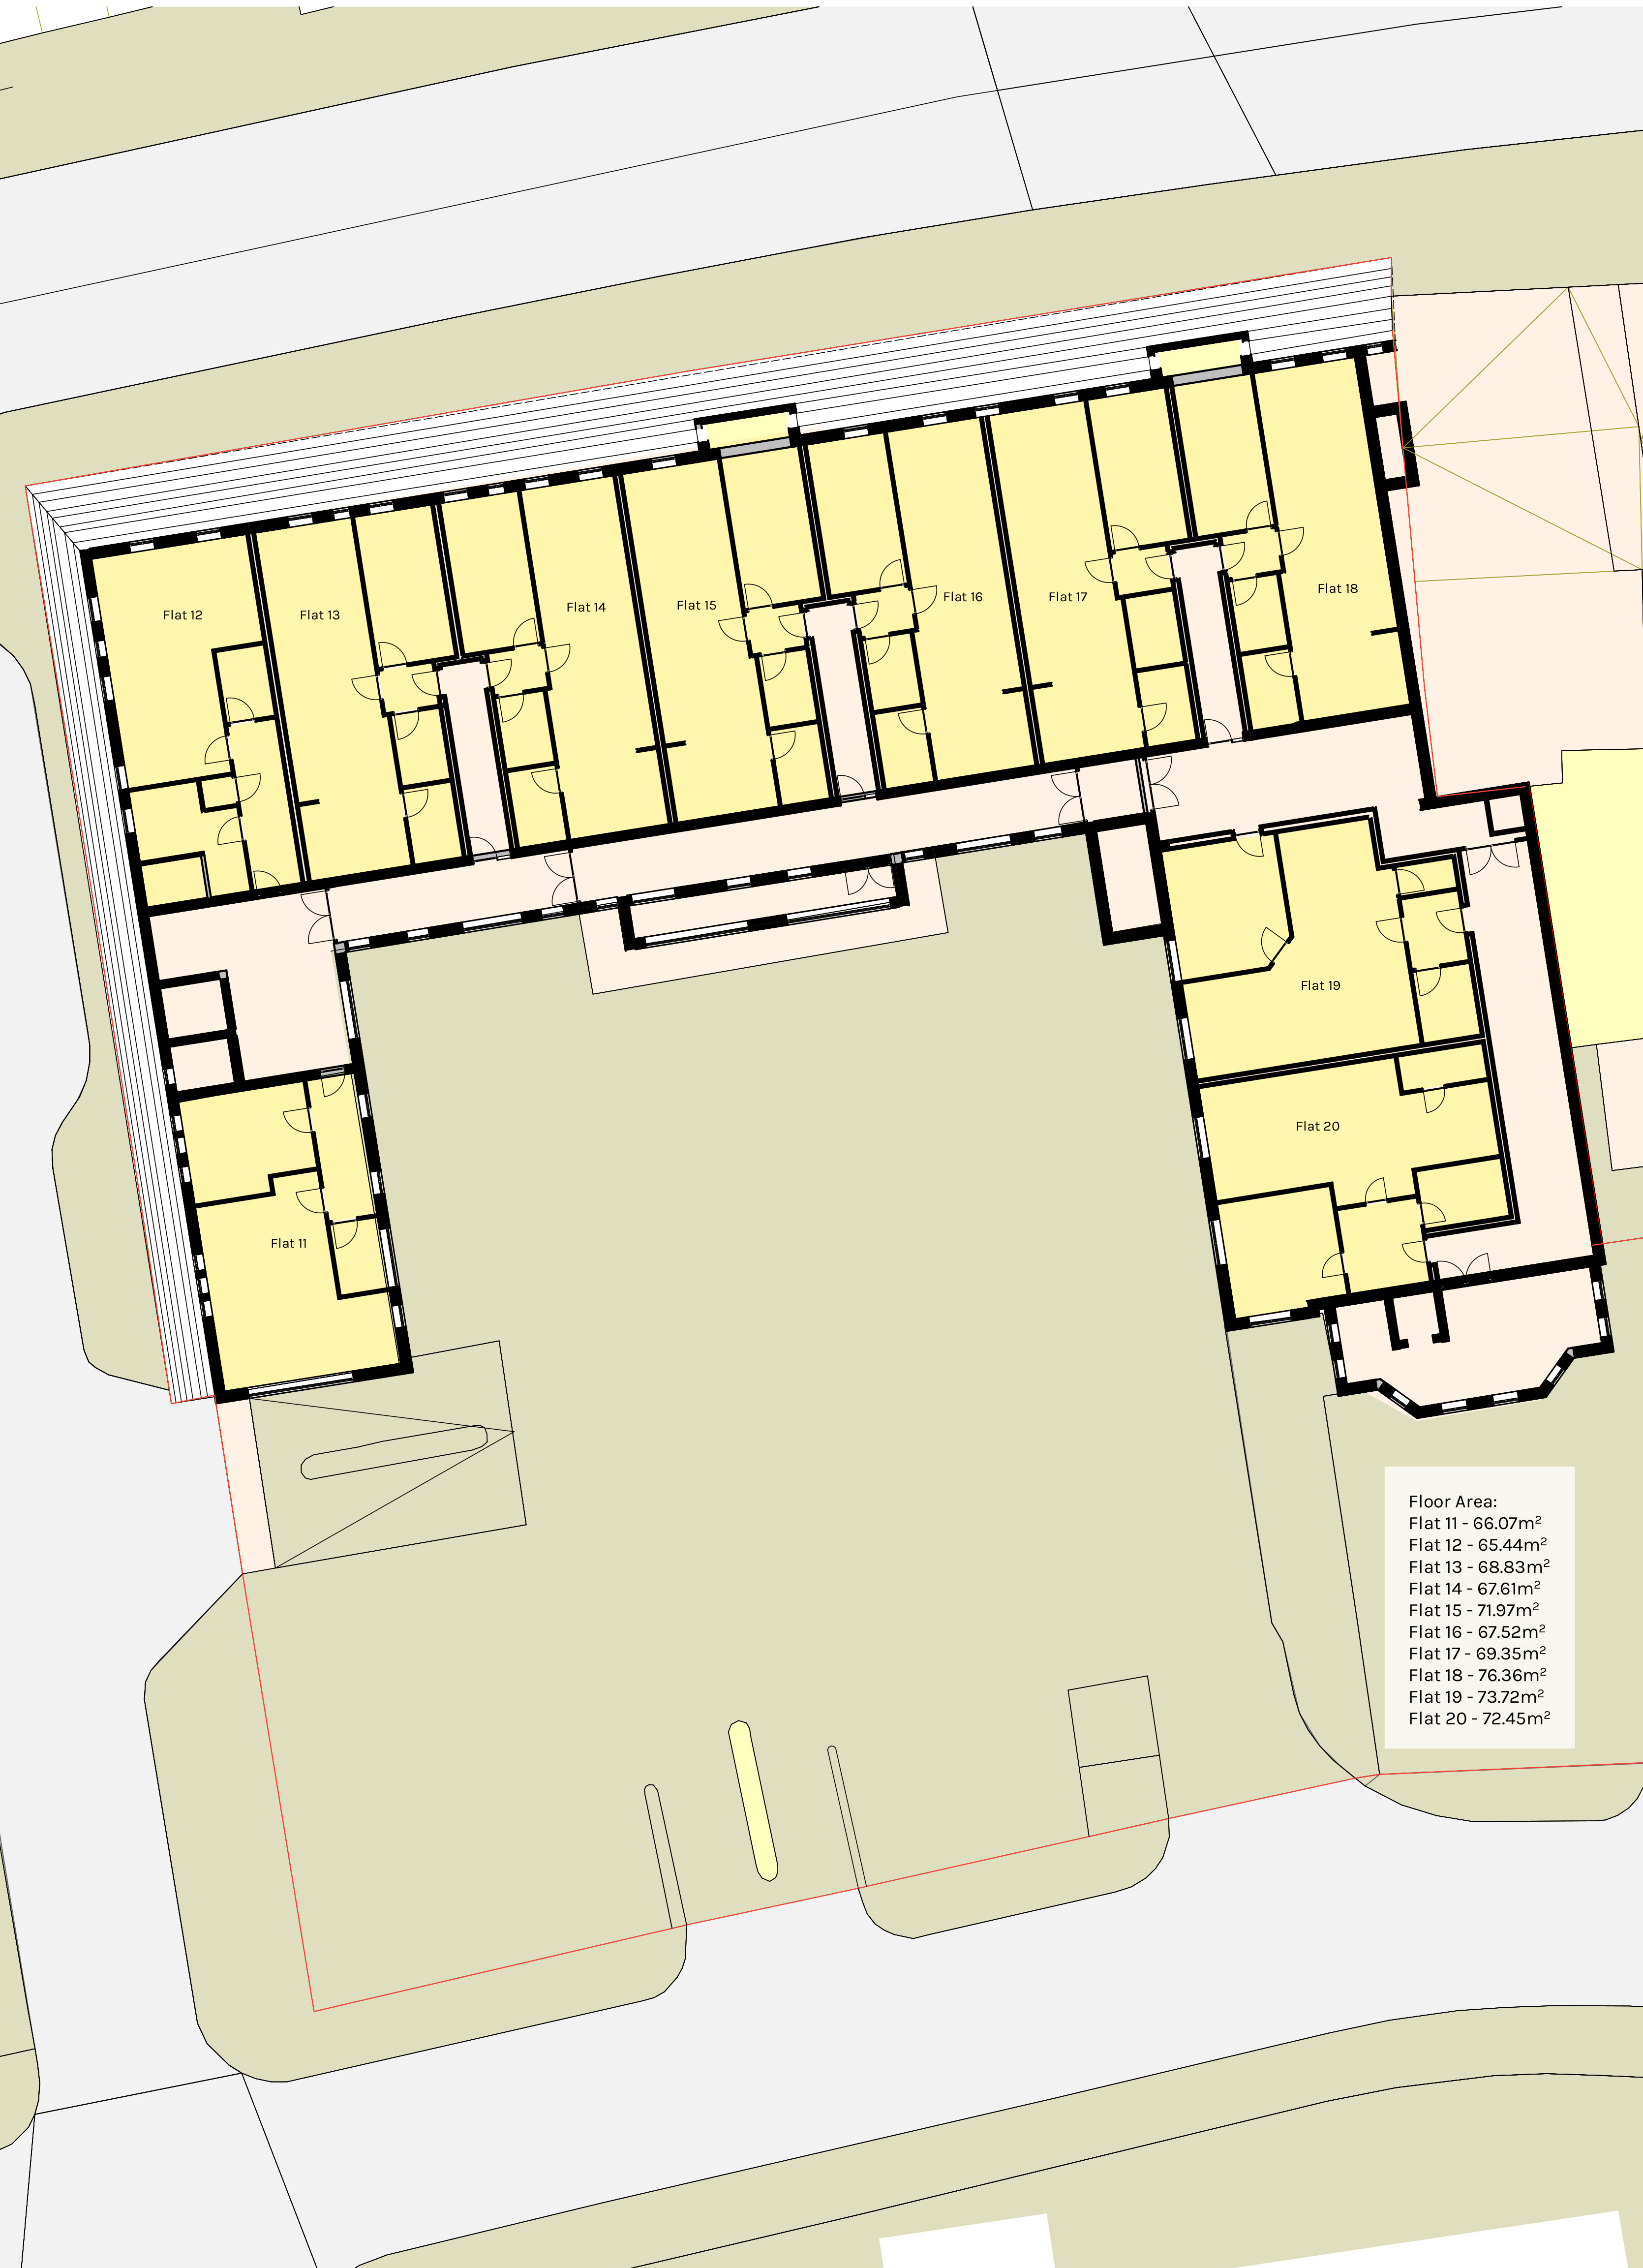 Proposed upper ground floor plan of Kirgate Centre for residential accommodation